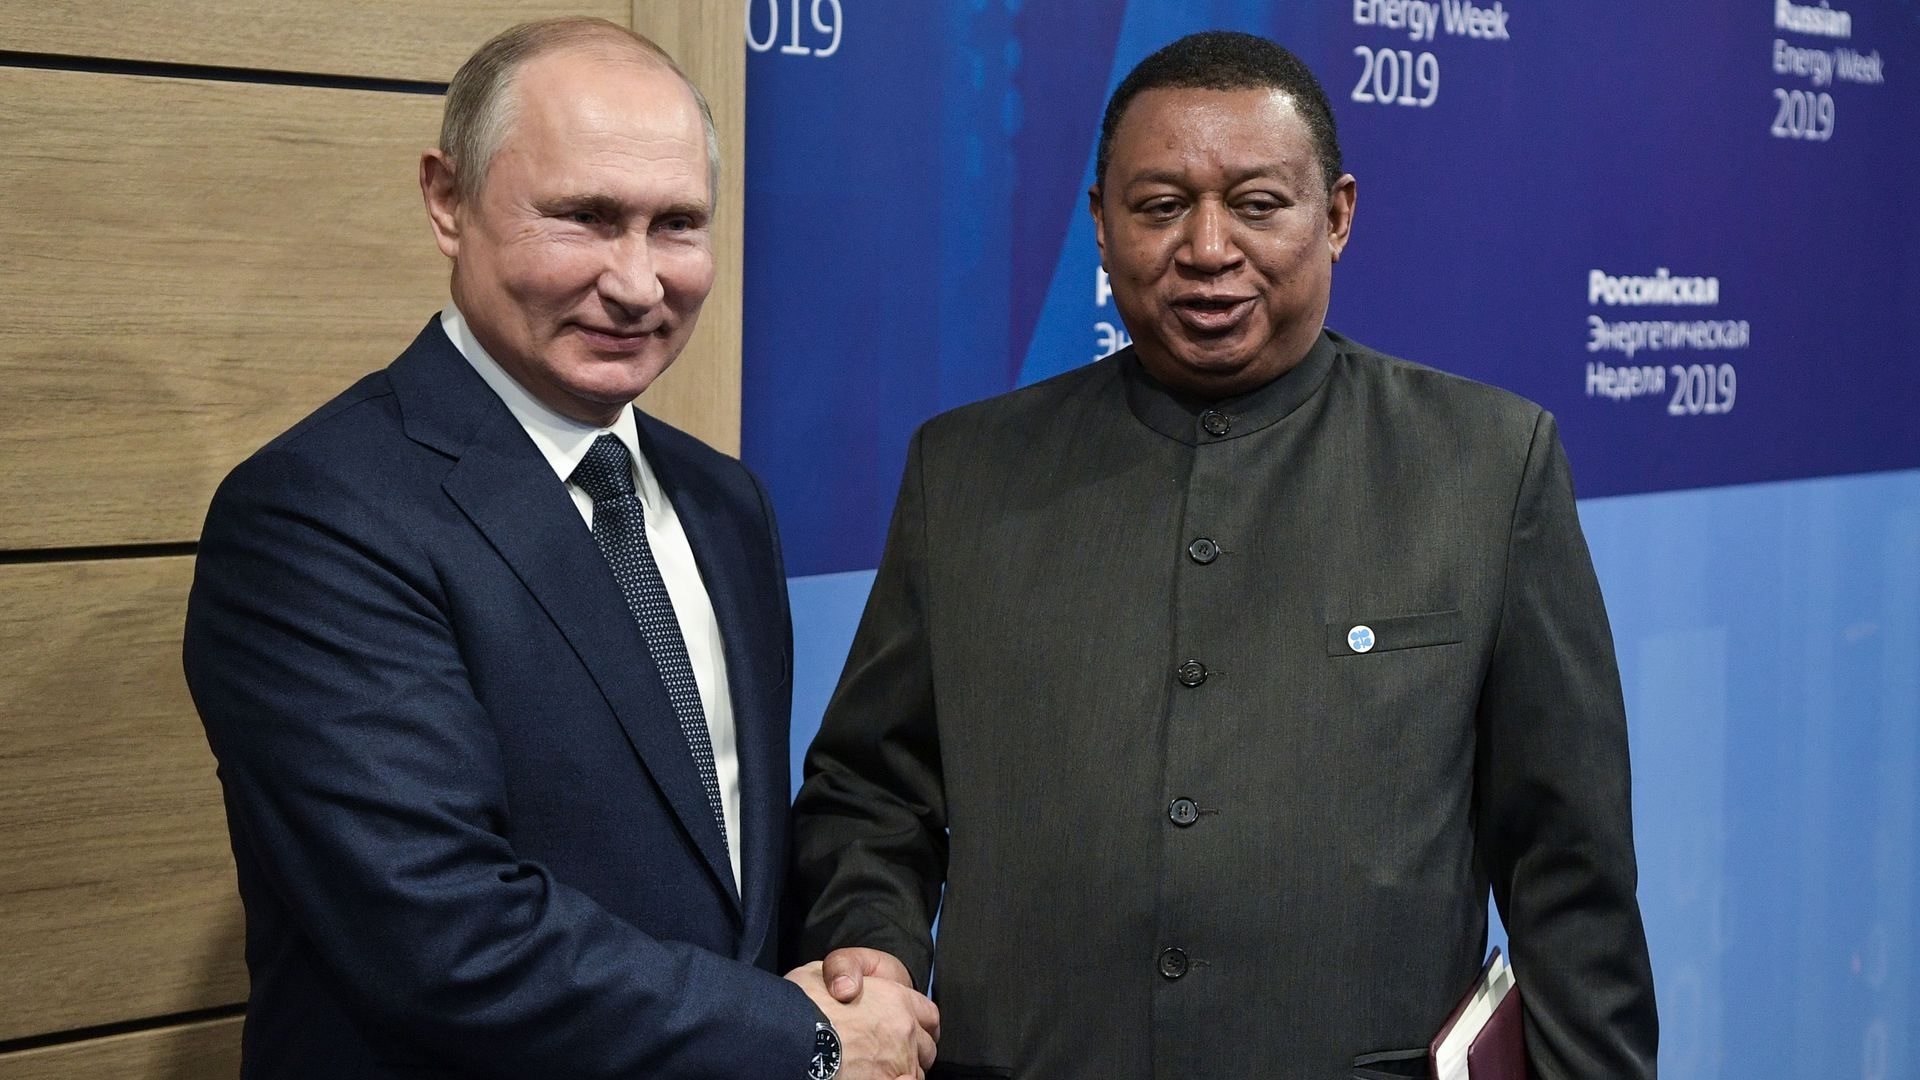 OPEC Secretary General Mohammed Barkindo (R) shakes hands with Russian President Vladimir Putin (L) during their meeting on the sidelines of the 2019 Russian Energy Week forum in Moscow, on October 2,